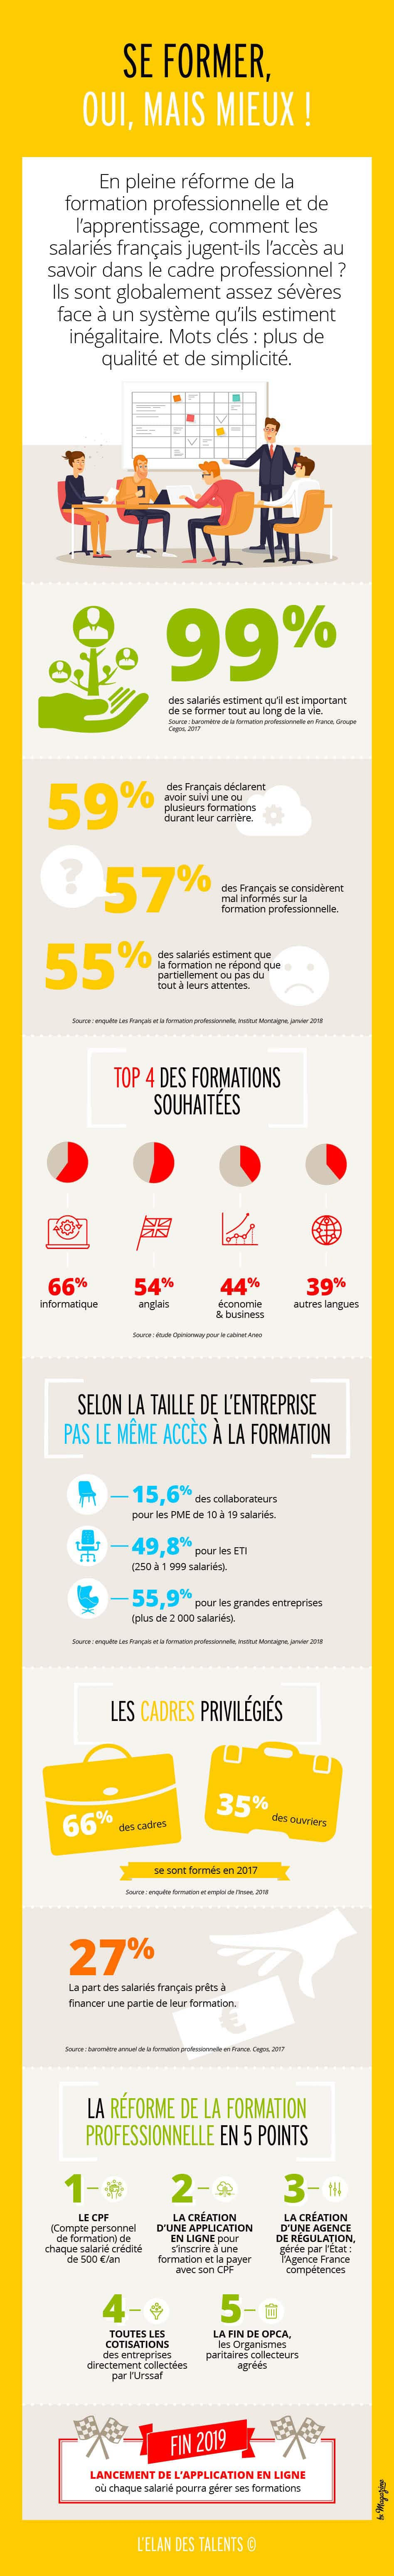 Infographie formation professionnelle